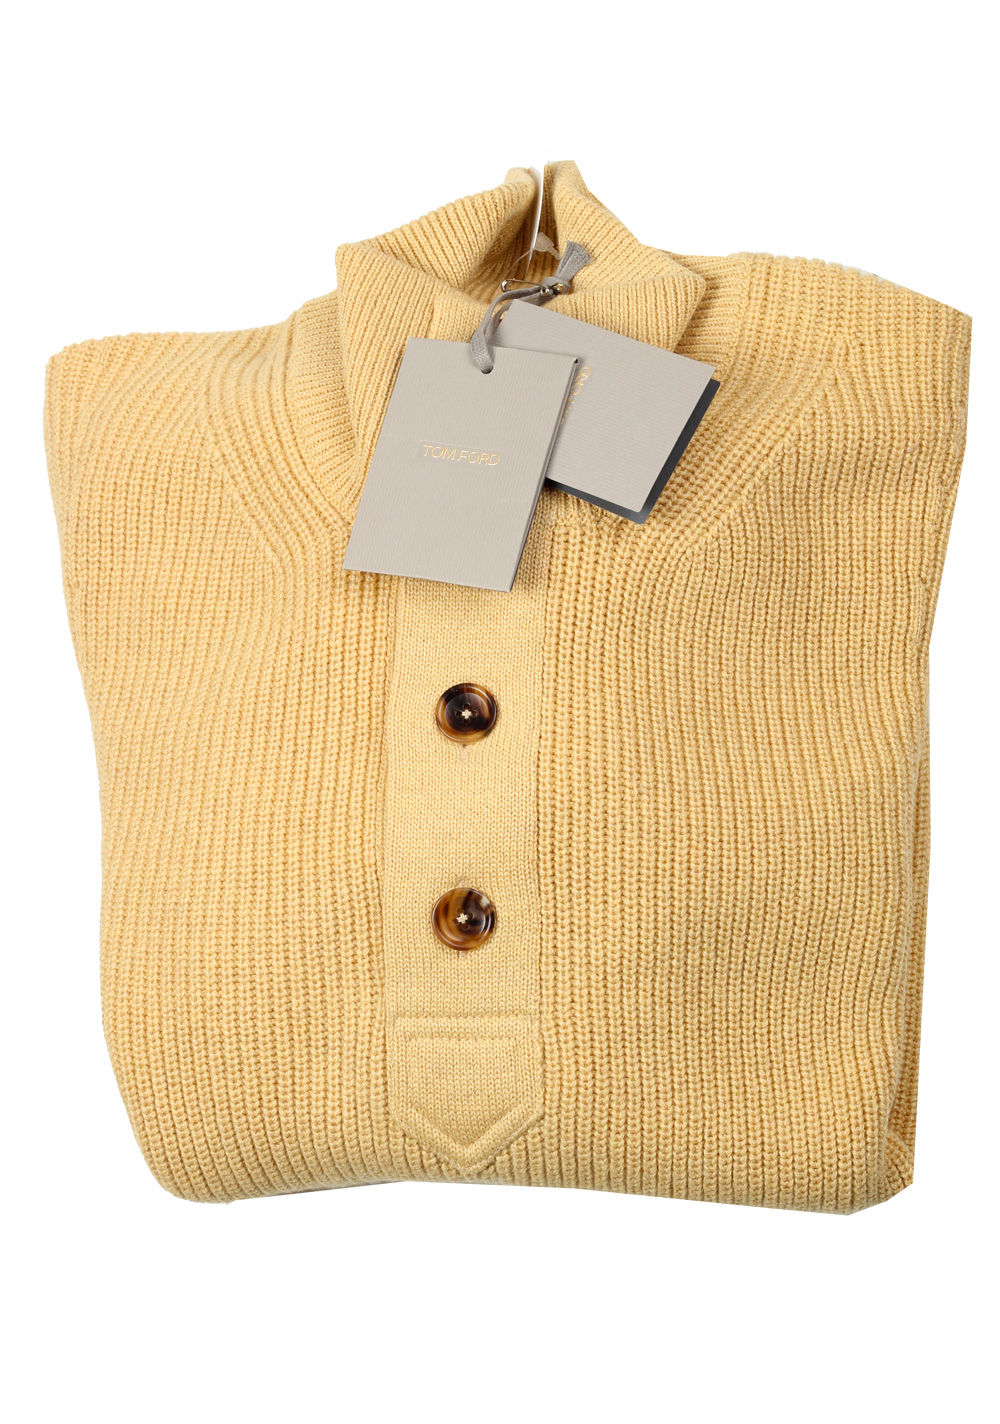 TOM FORD Yellow Funnel Collar Sweater Size 48 / 38R U.S. In Cashmere Linen   Costume Limité